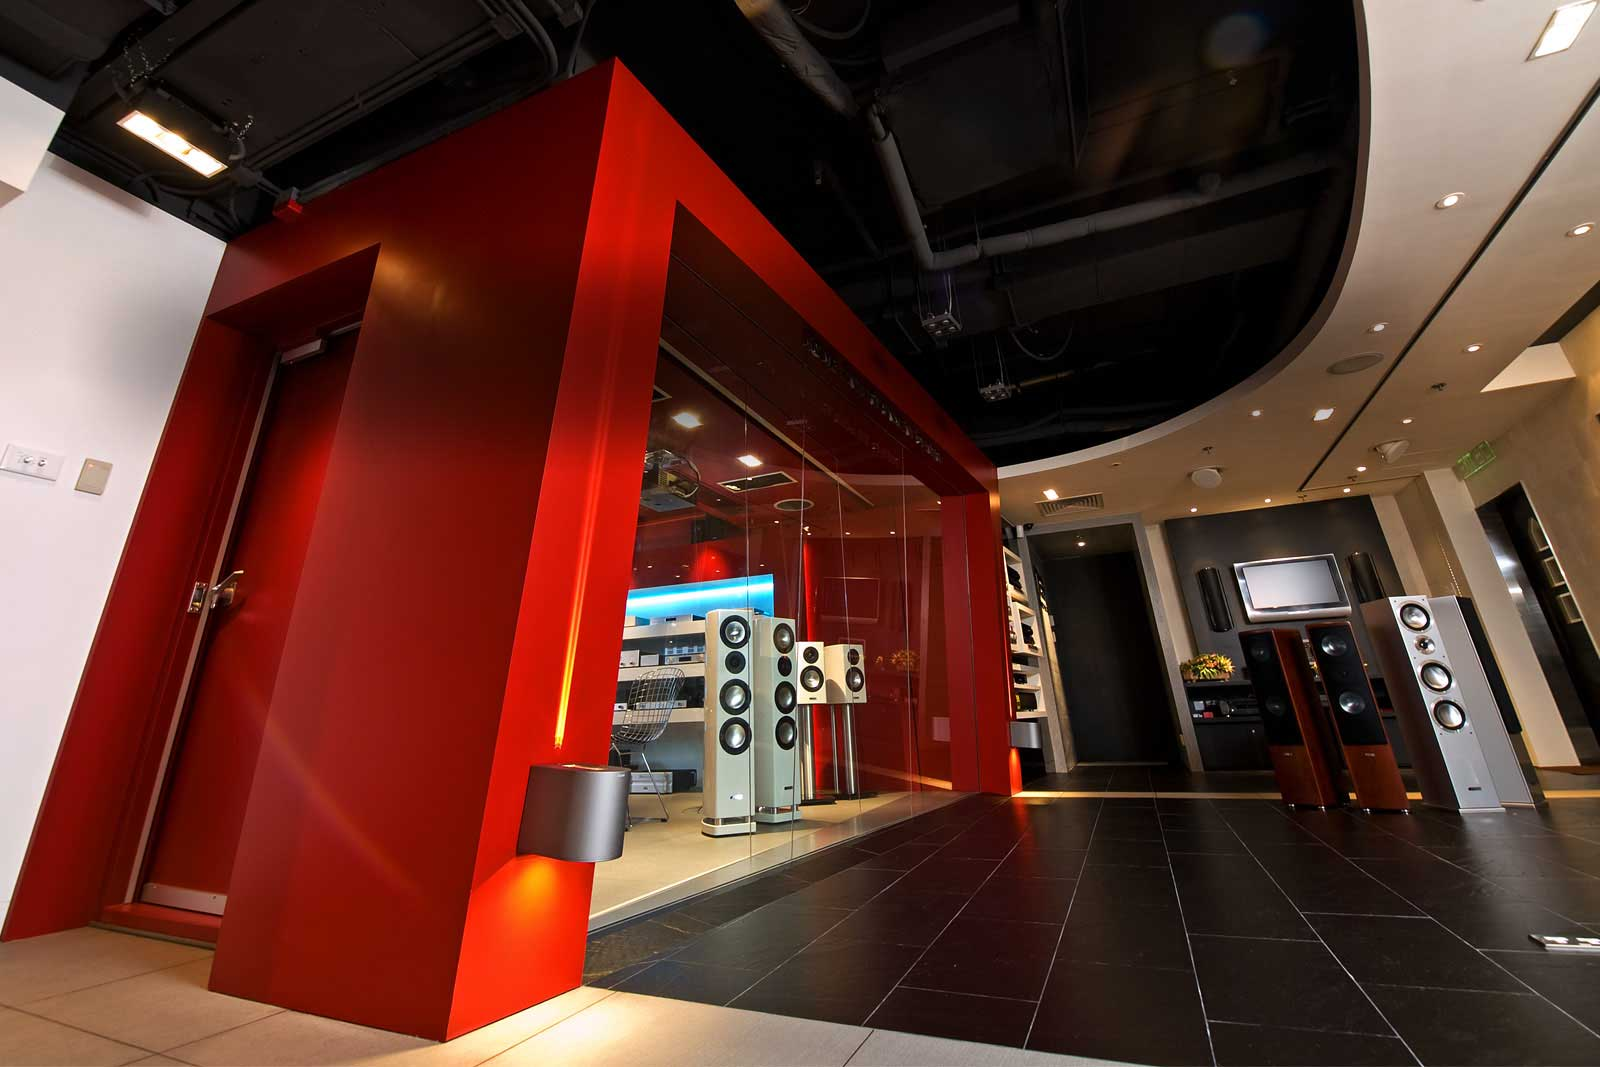 Hardware employed in this room include a projector and motorized acoustically transparent screen, a large LED TV and numerous source equipment as well as in-ceiling surround speakers for customers to experience.  The seating design is flexible to allow the level of authenticity a user shall desire.